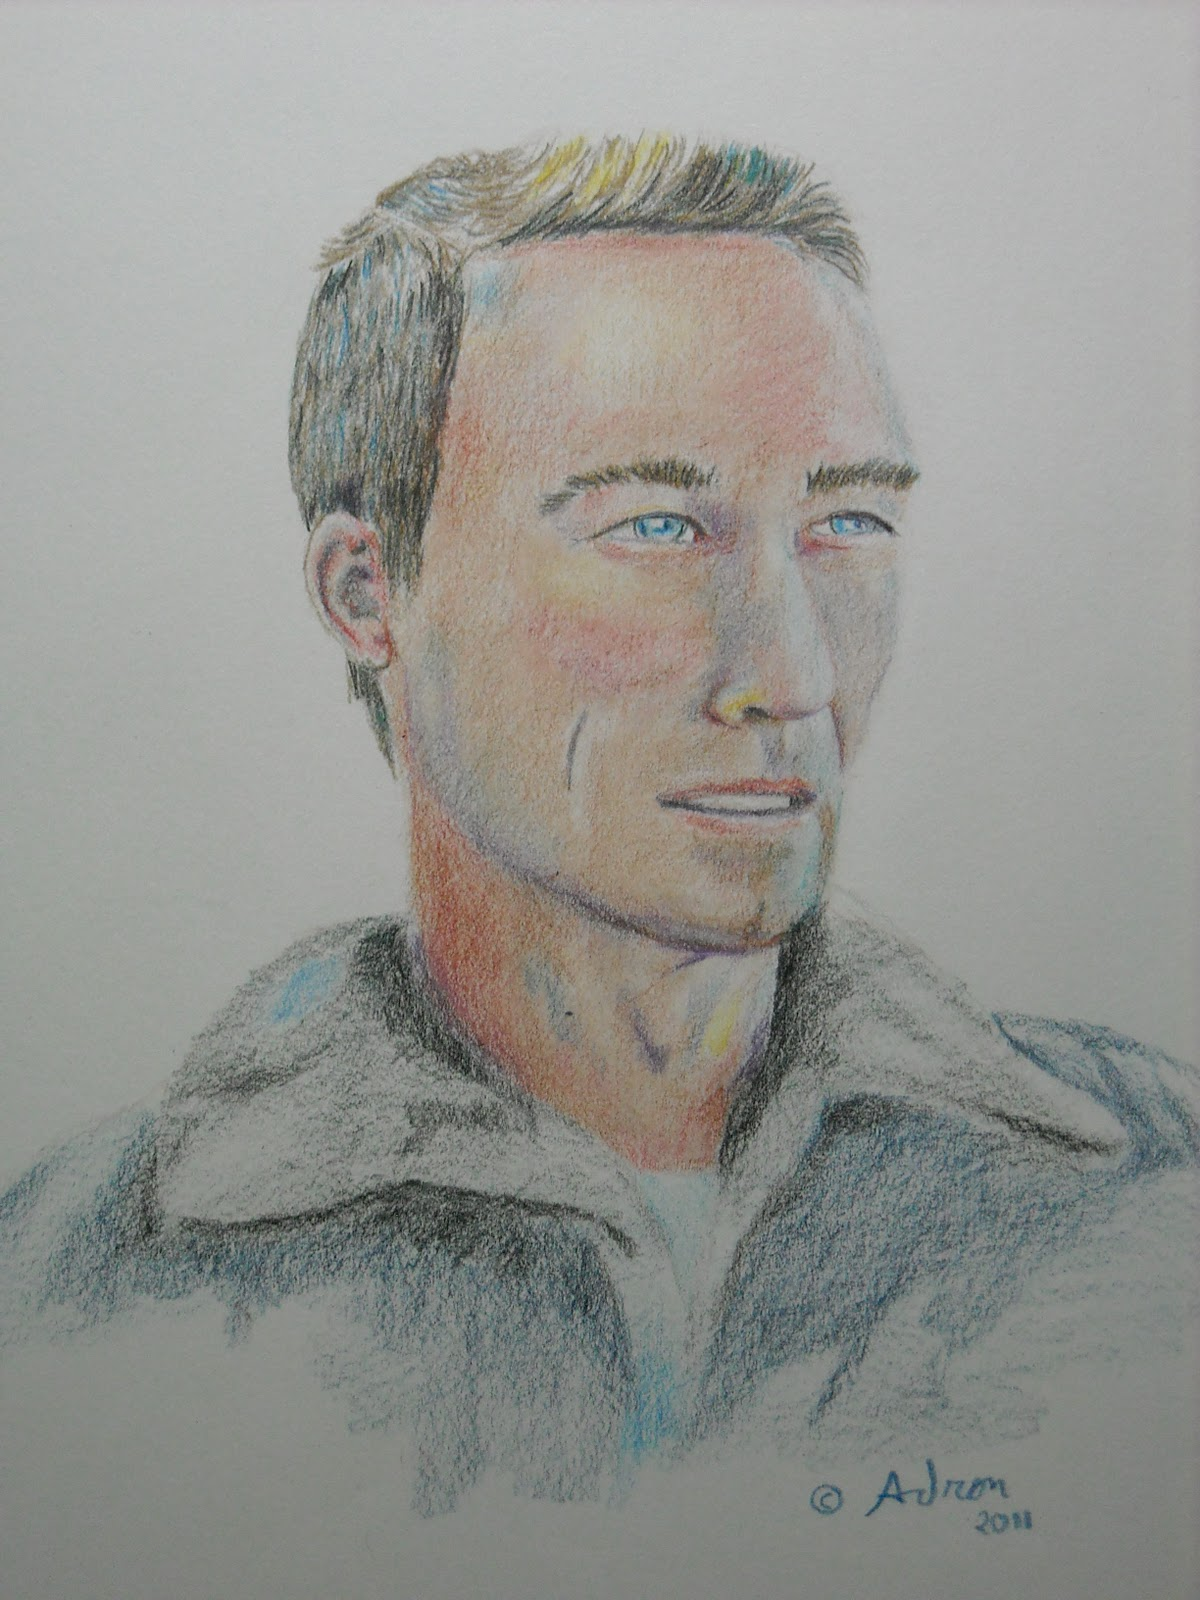 Portraits By Adron A Portrait In Pencil Of A Man Looking Away